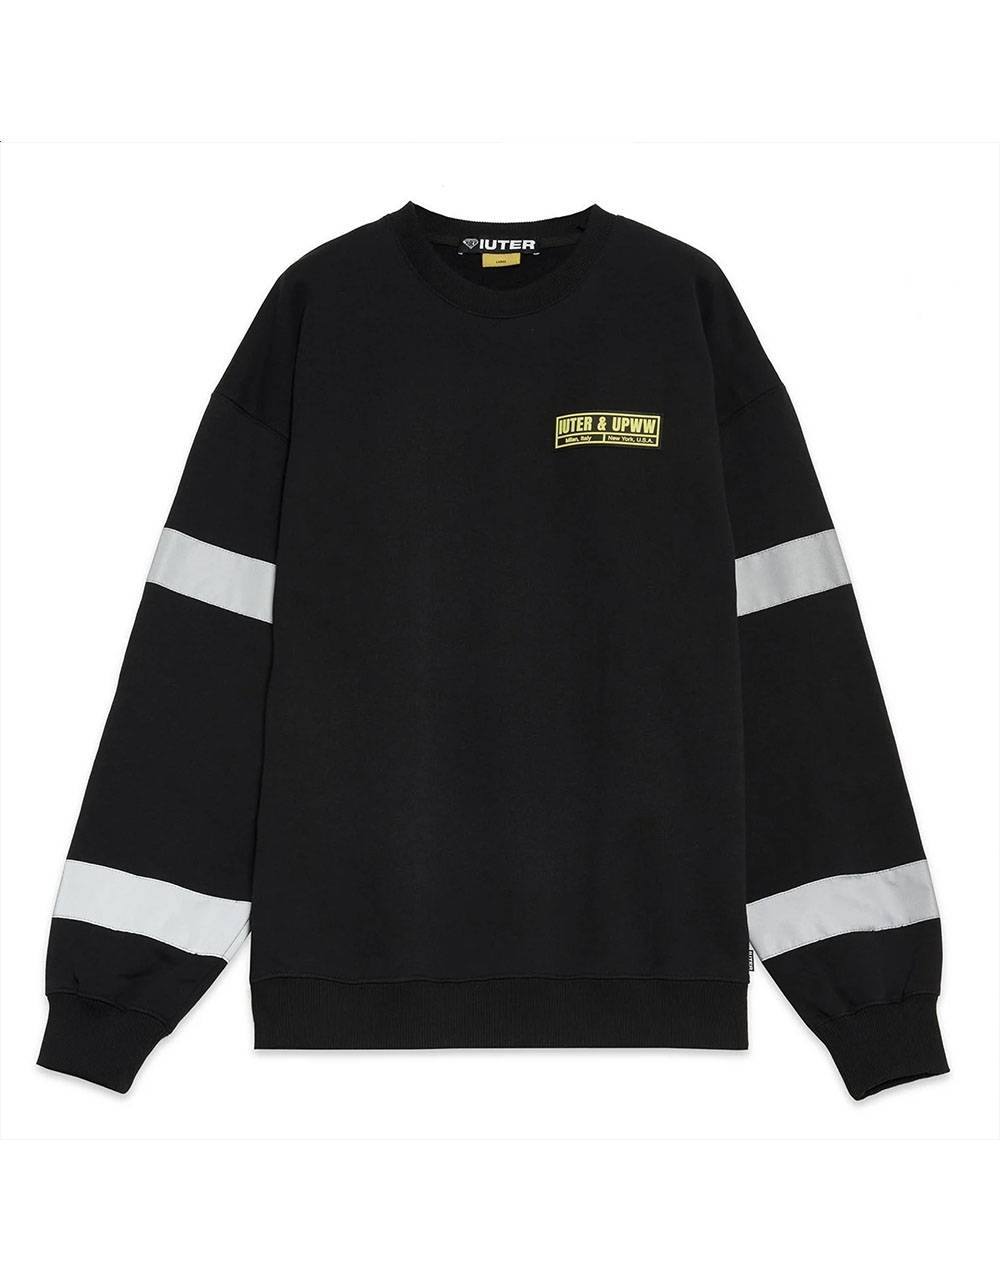 Iuter x U.P.W.W. crewneck sweater - Black IUTER Sweater 129,00 €